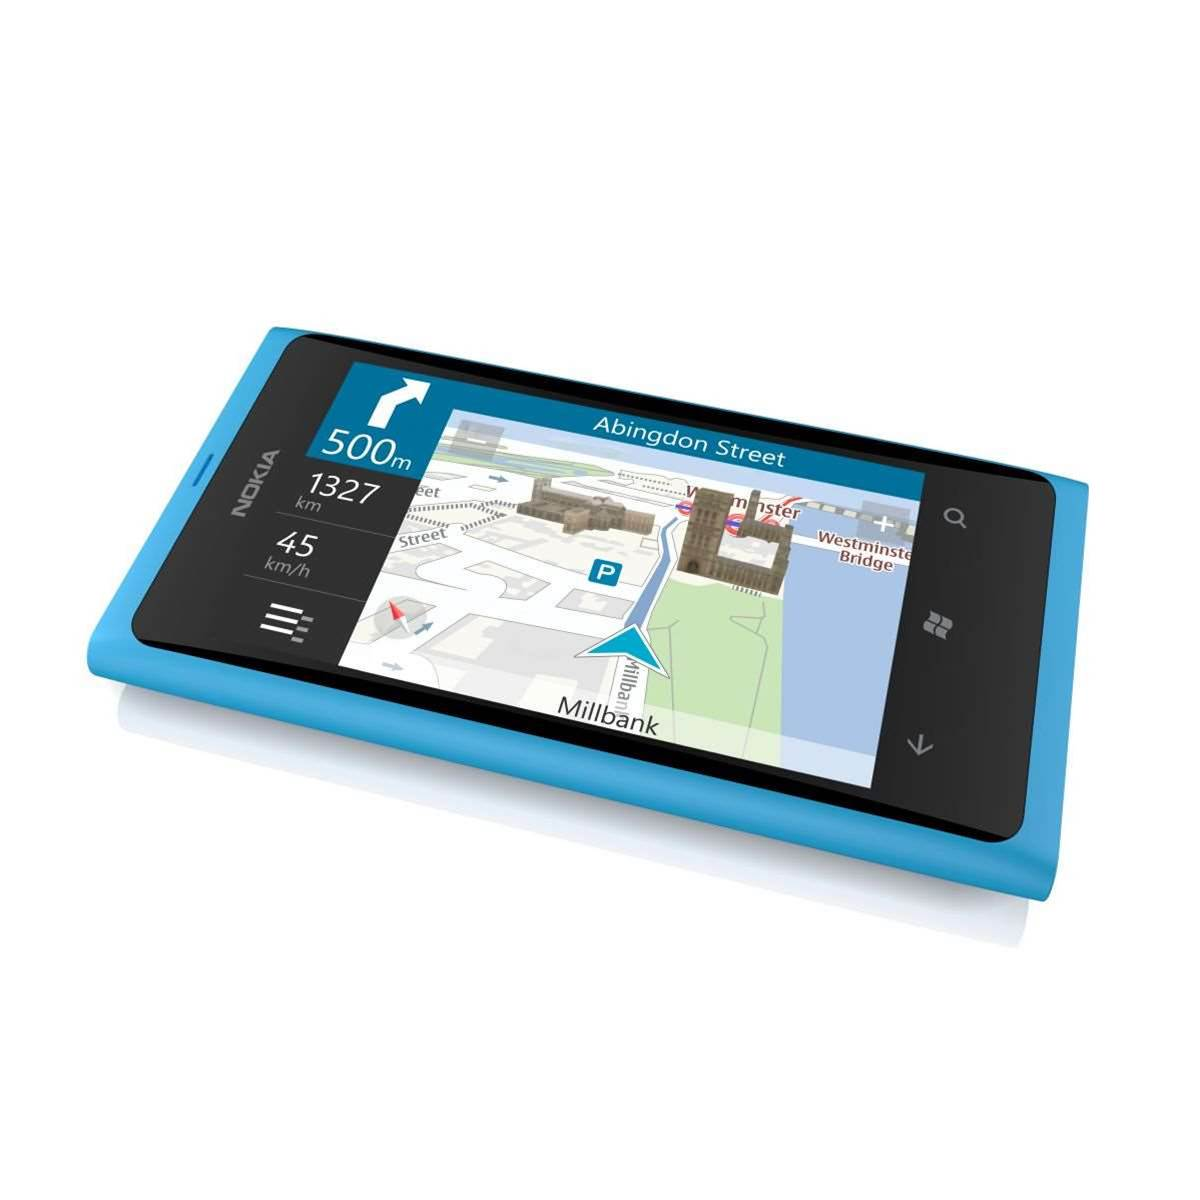 The sleek Lumia 800 features a 3.7 inch AMOLED ClearBlack curved display and a 1.4 GHz processor with hardware acceleration and a graphics processor.